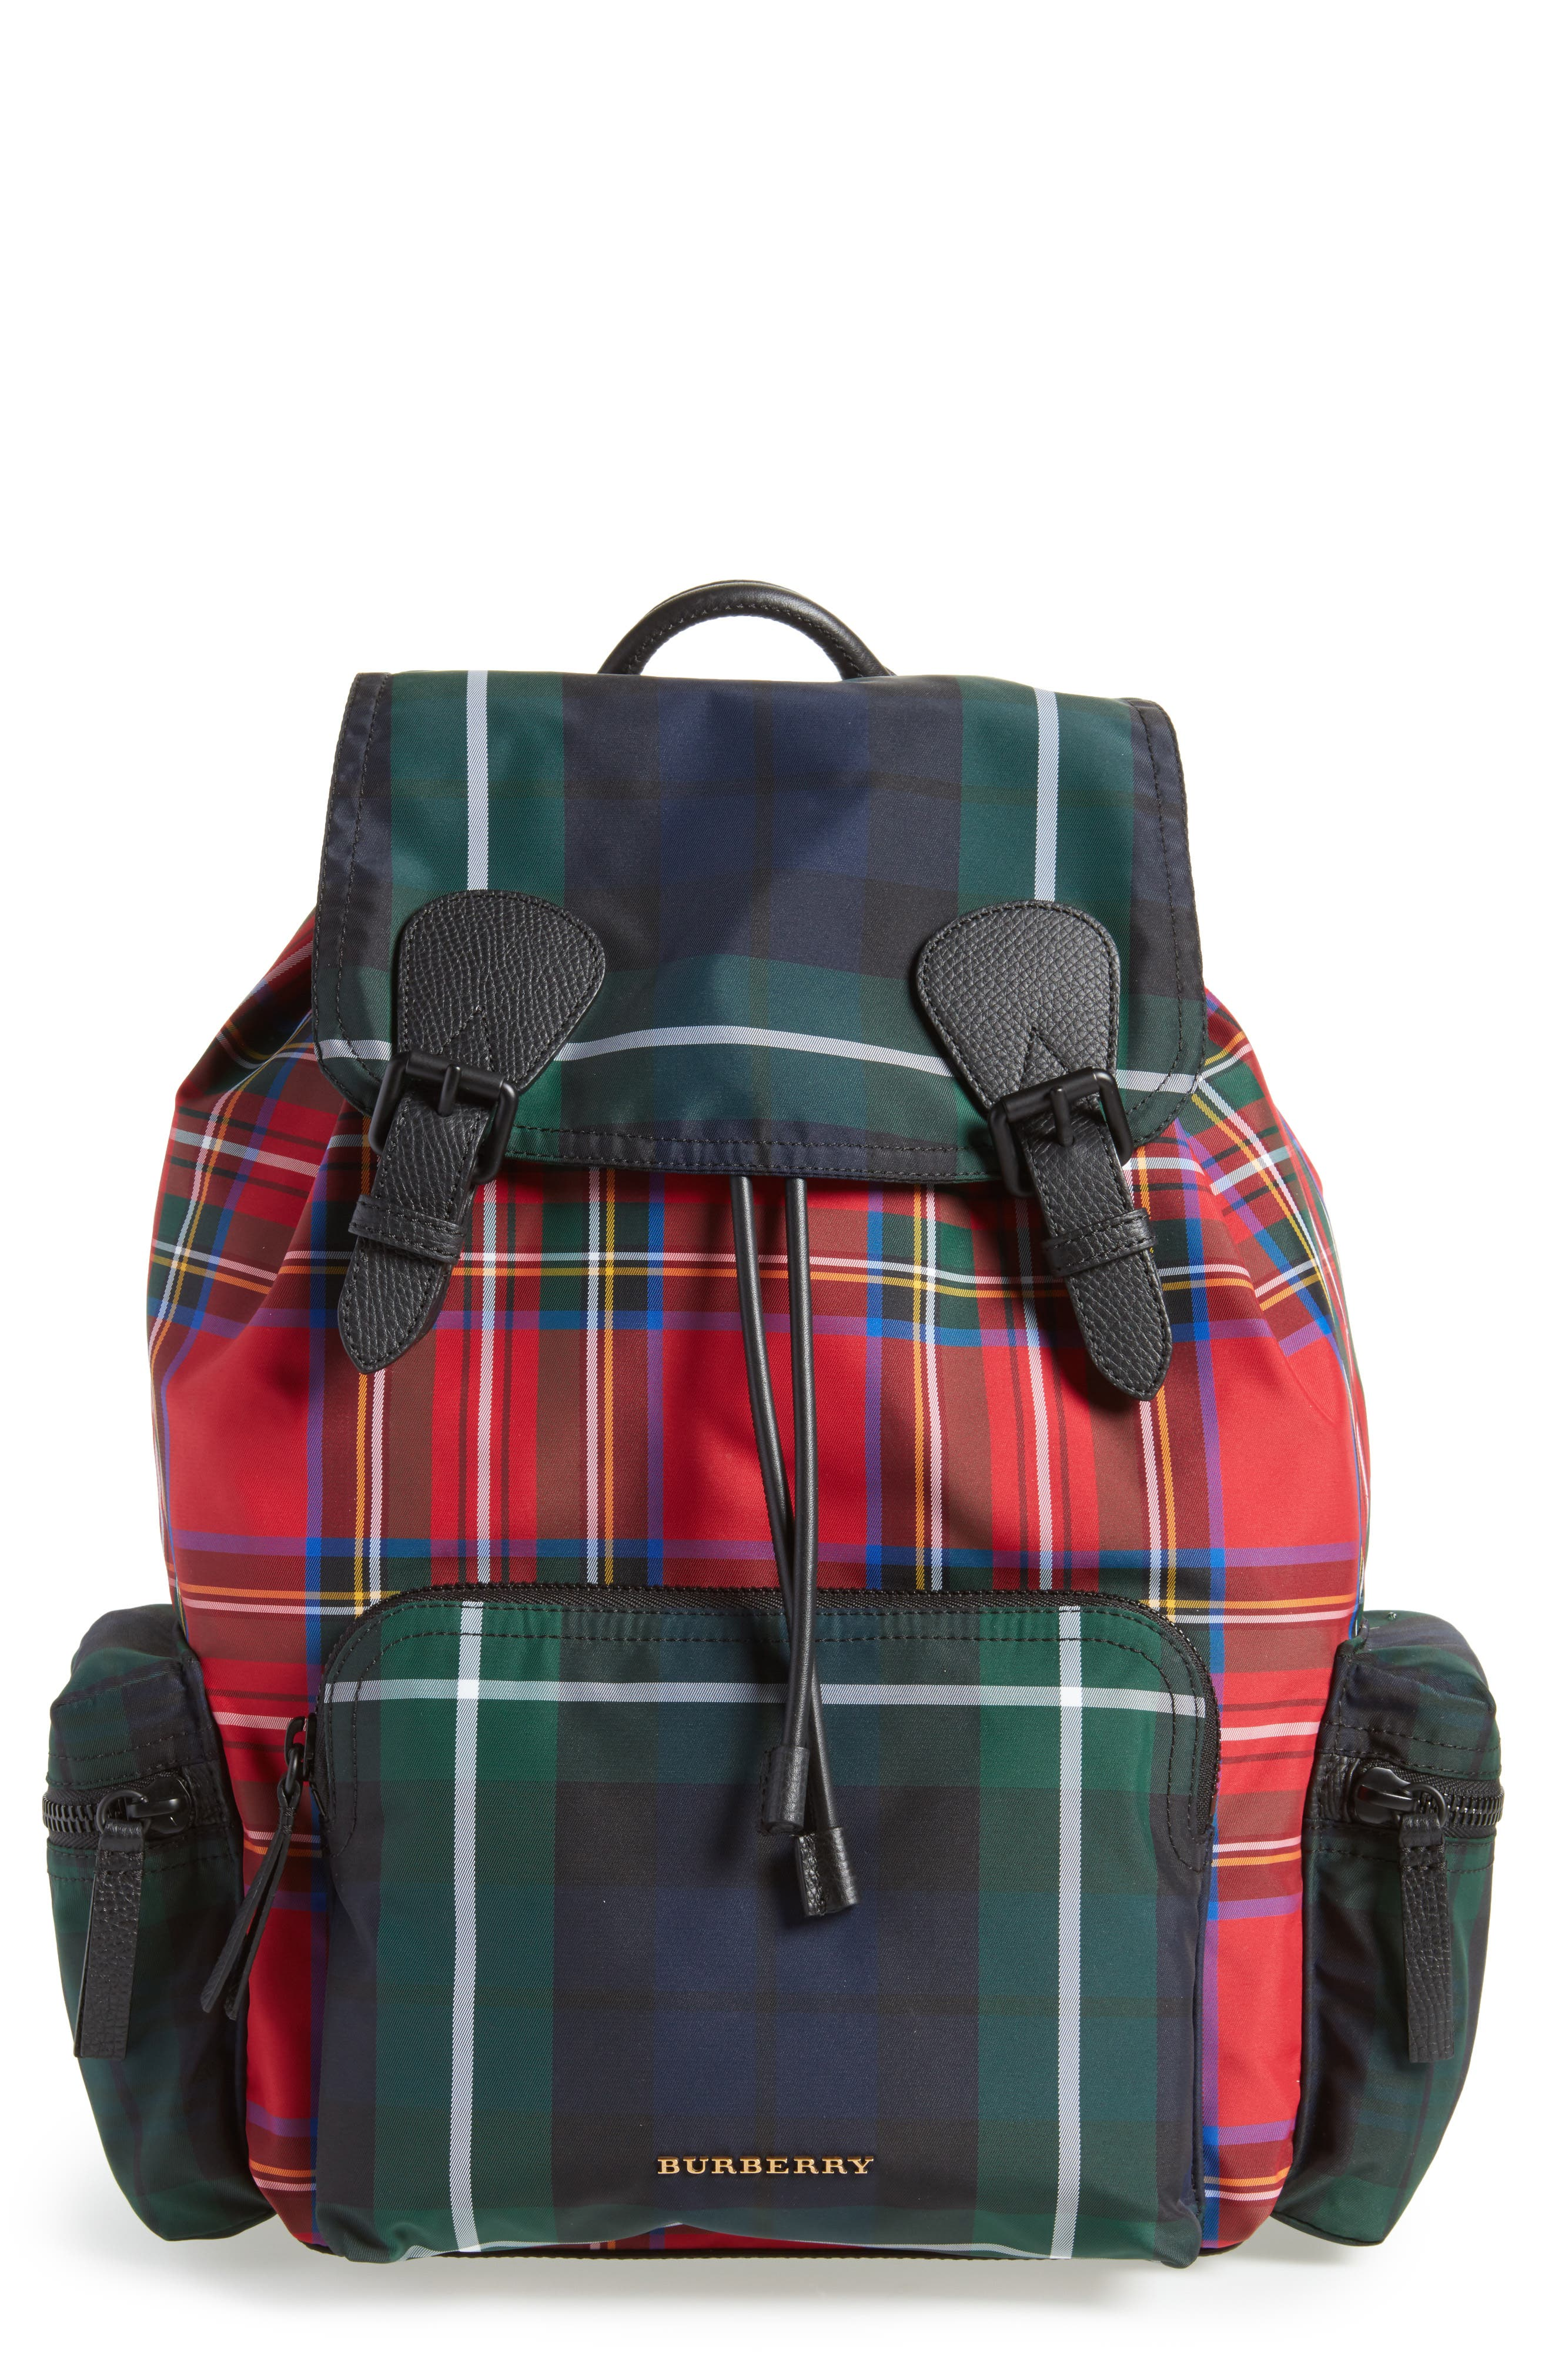 Alternate Image 1 Selected - Burberry Tartan Patchwork Backpack